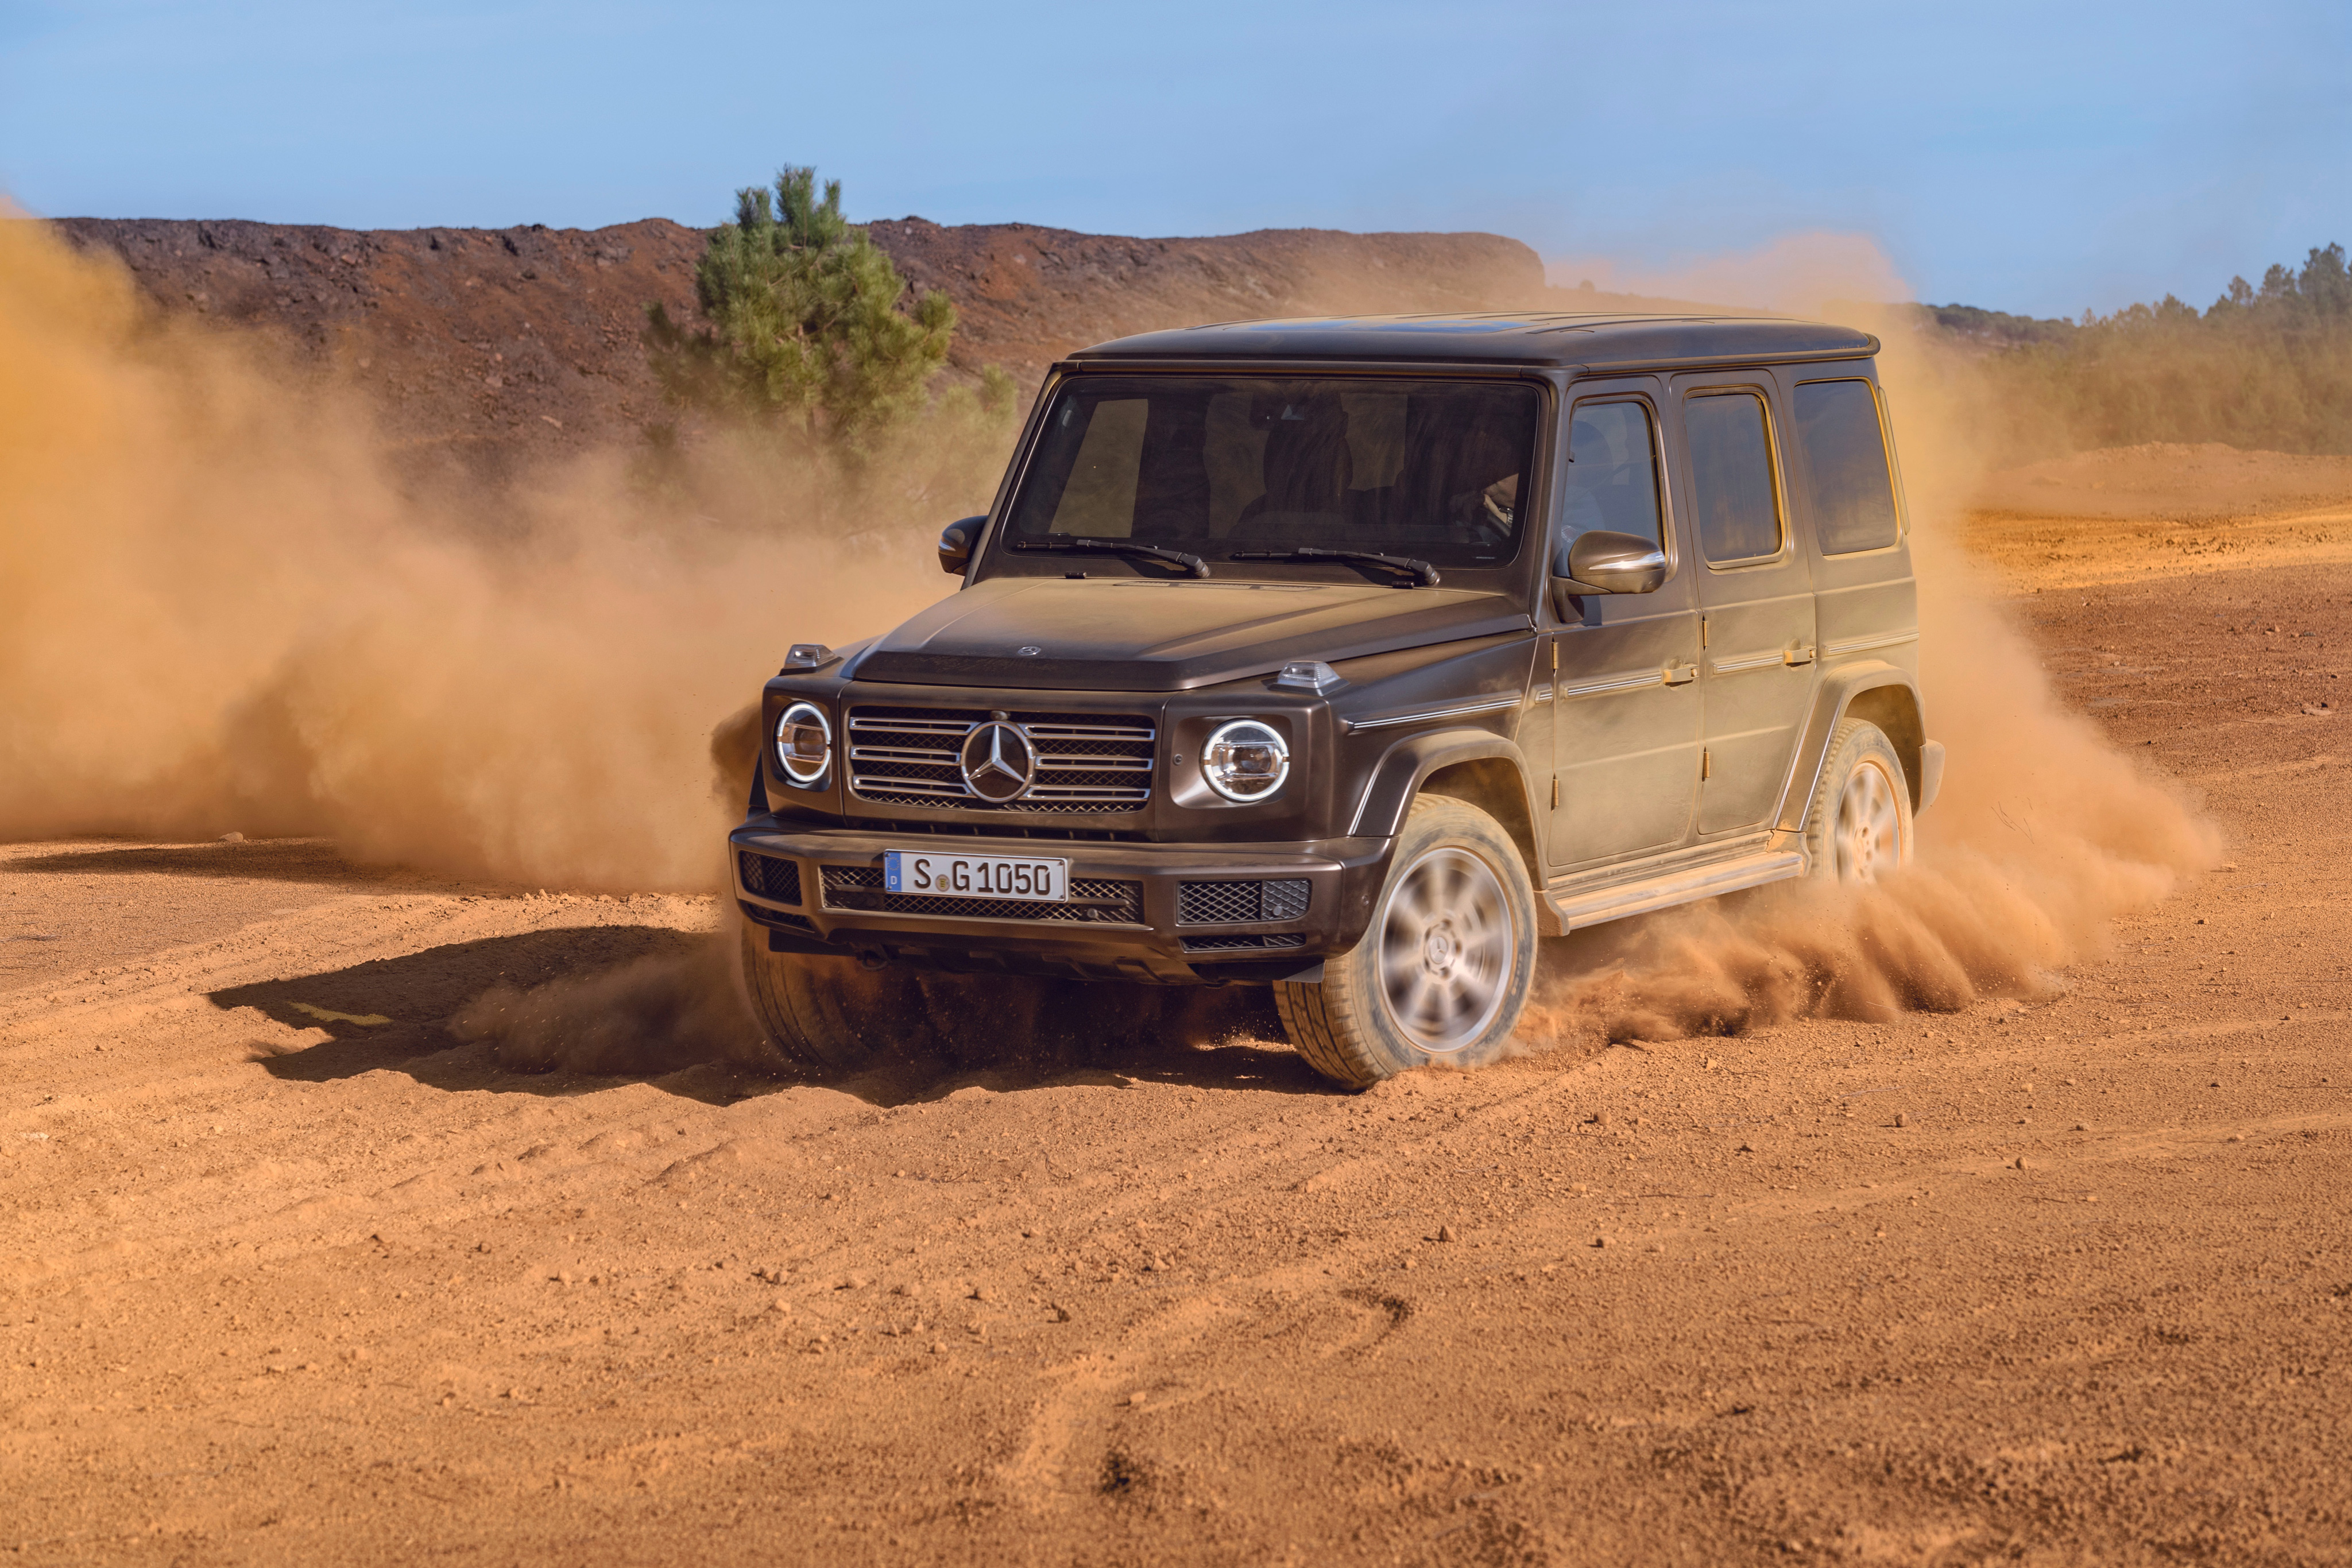 4k 2019 Mercedes G Class, HD Cars, 4k Wallpapers, Images ...